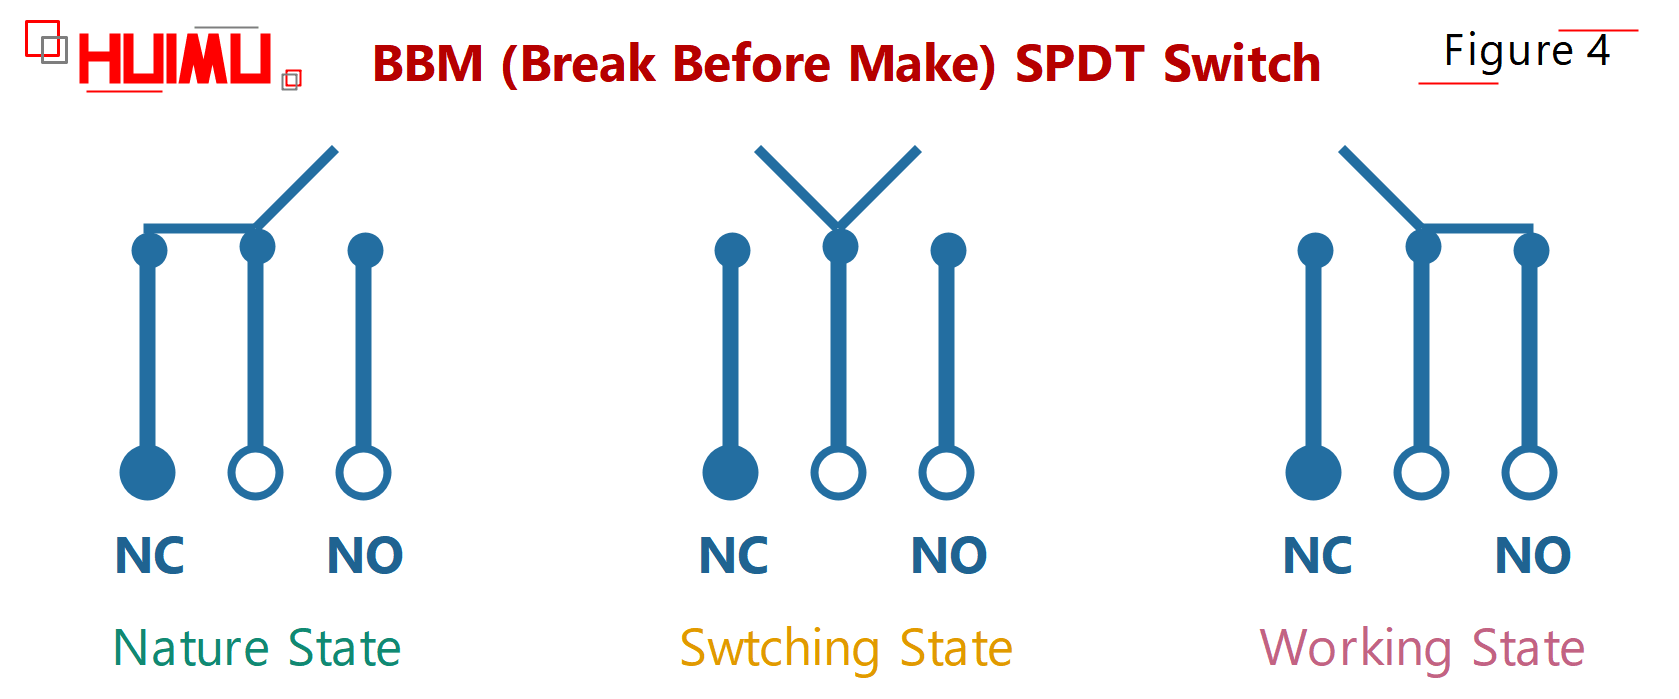 What is BBM (Break Before Make) ? How Break-Before-Make spdt switch works?